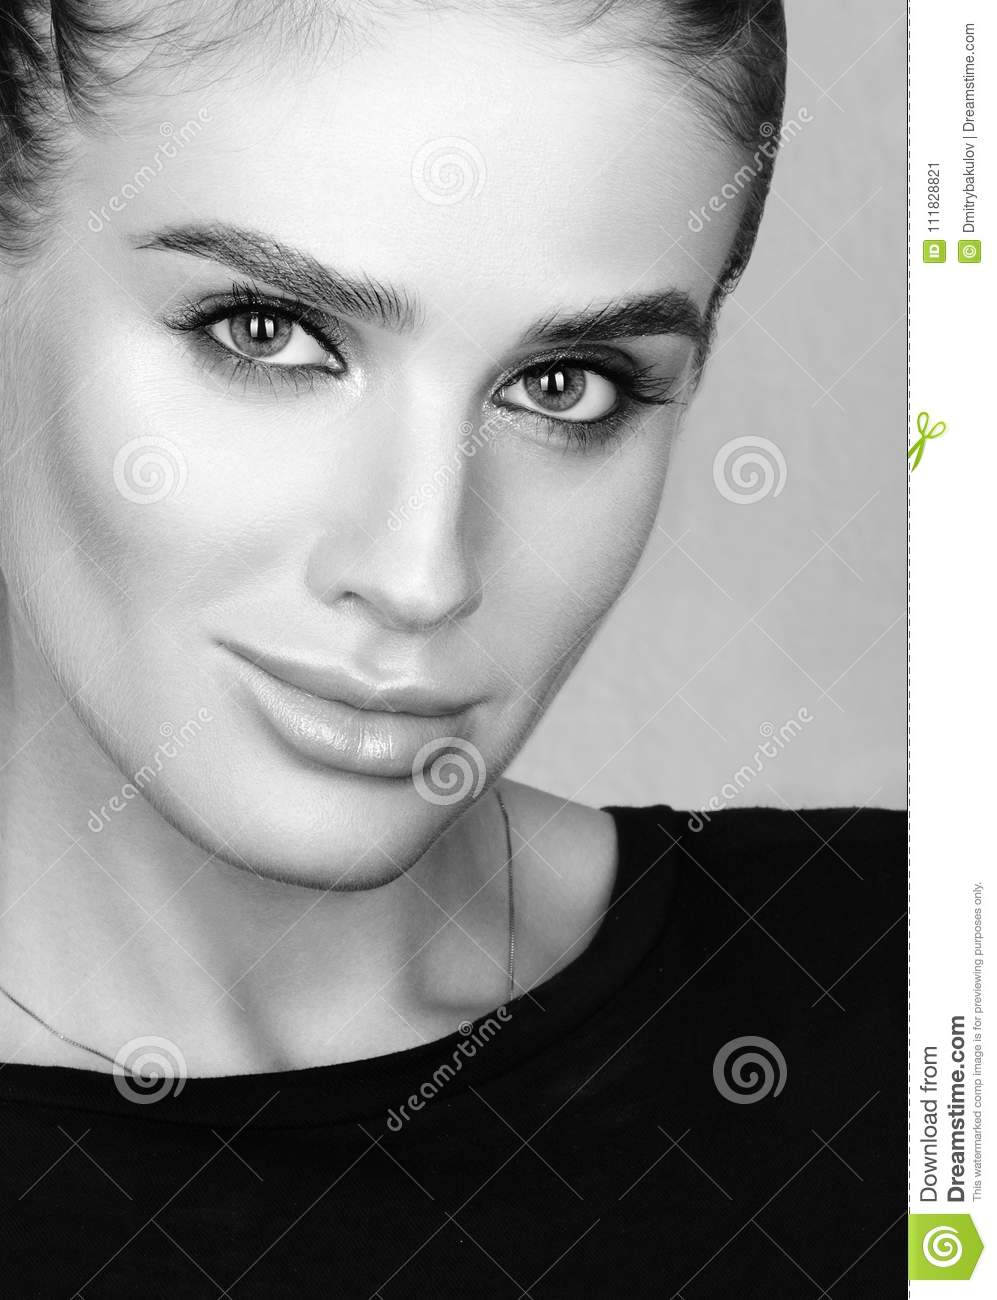 Black and white closeup beauty portrait of beautiful young woman with professional colourful make up